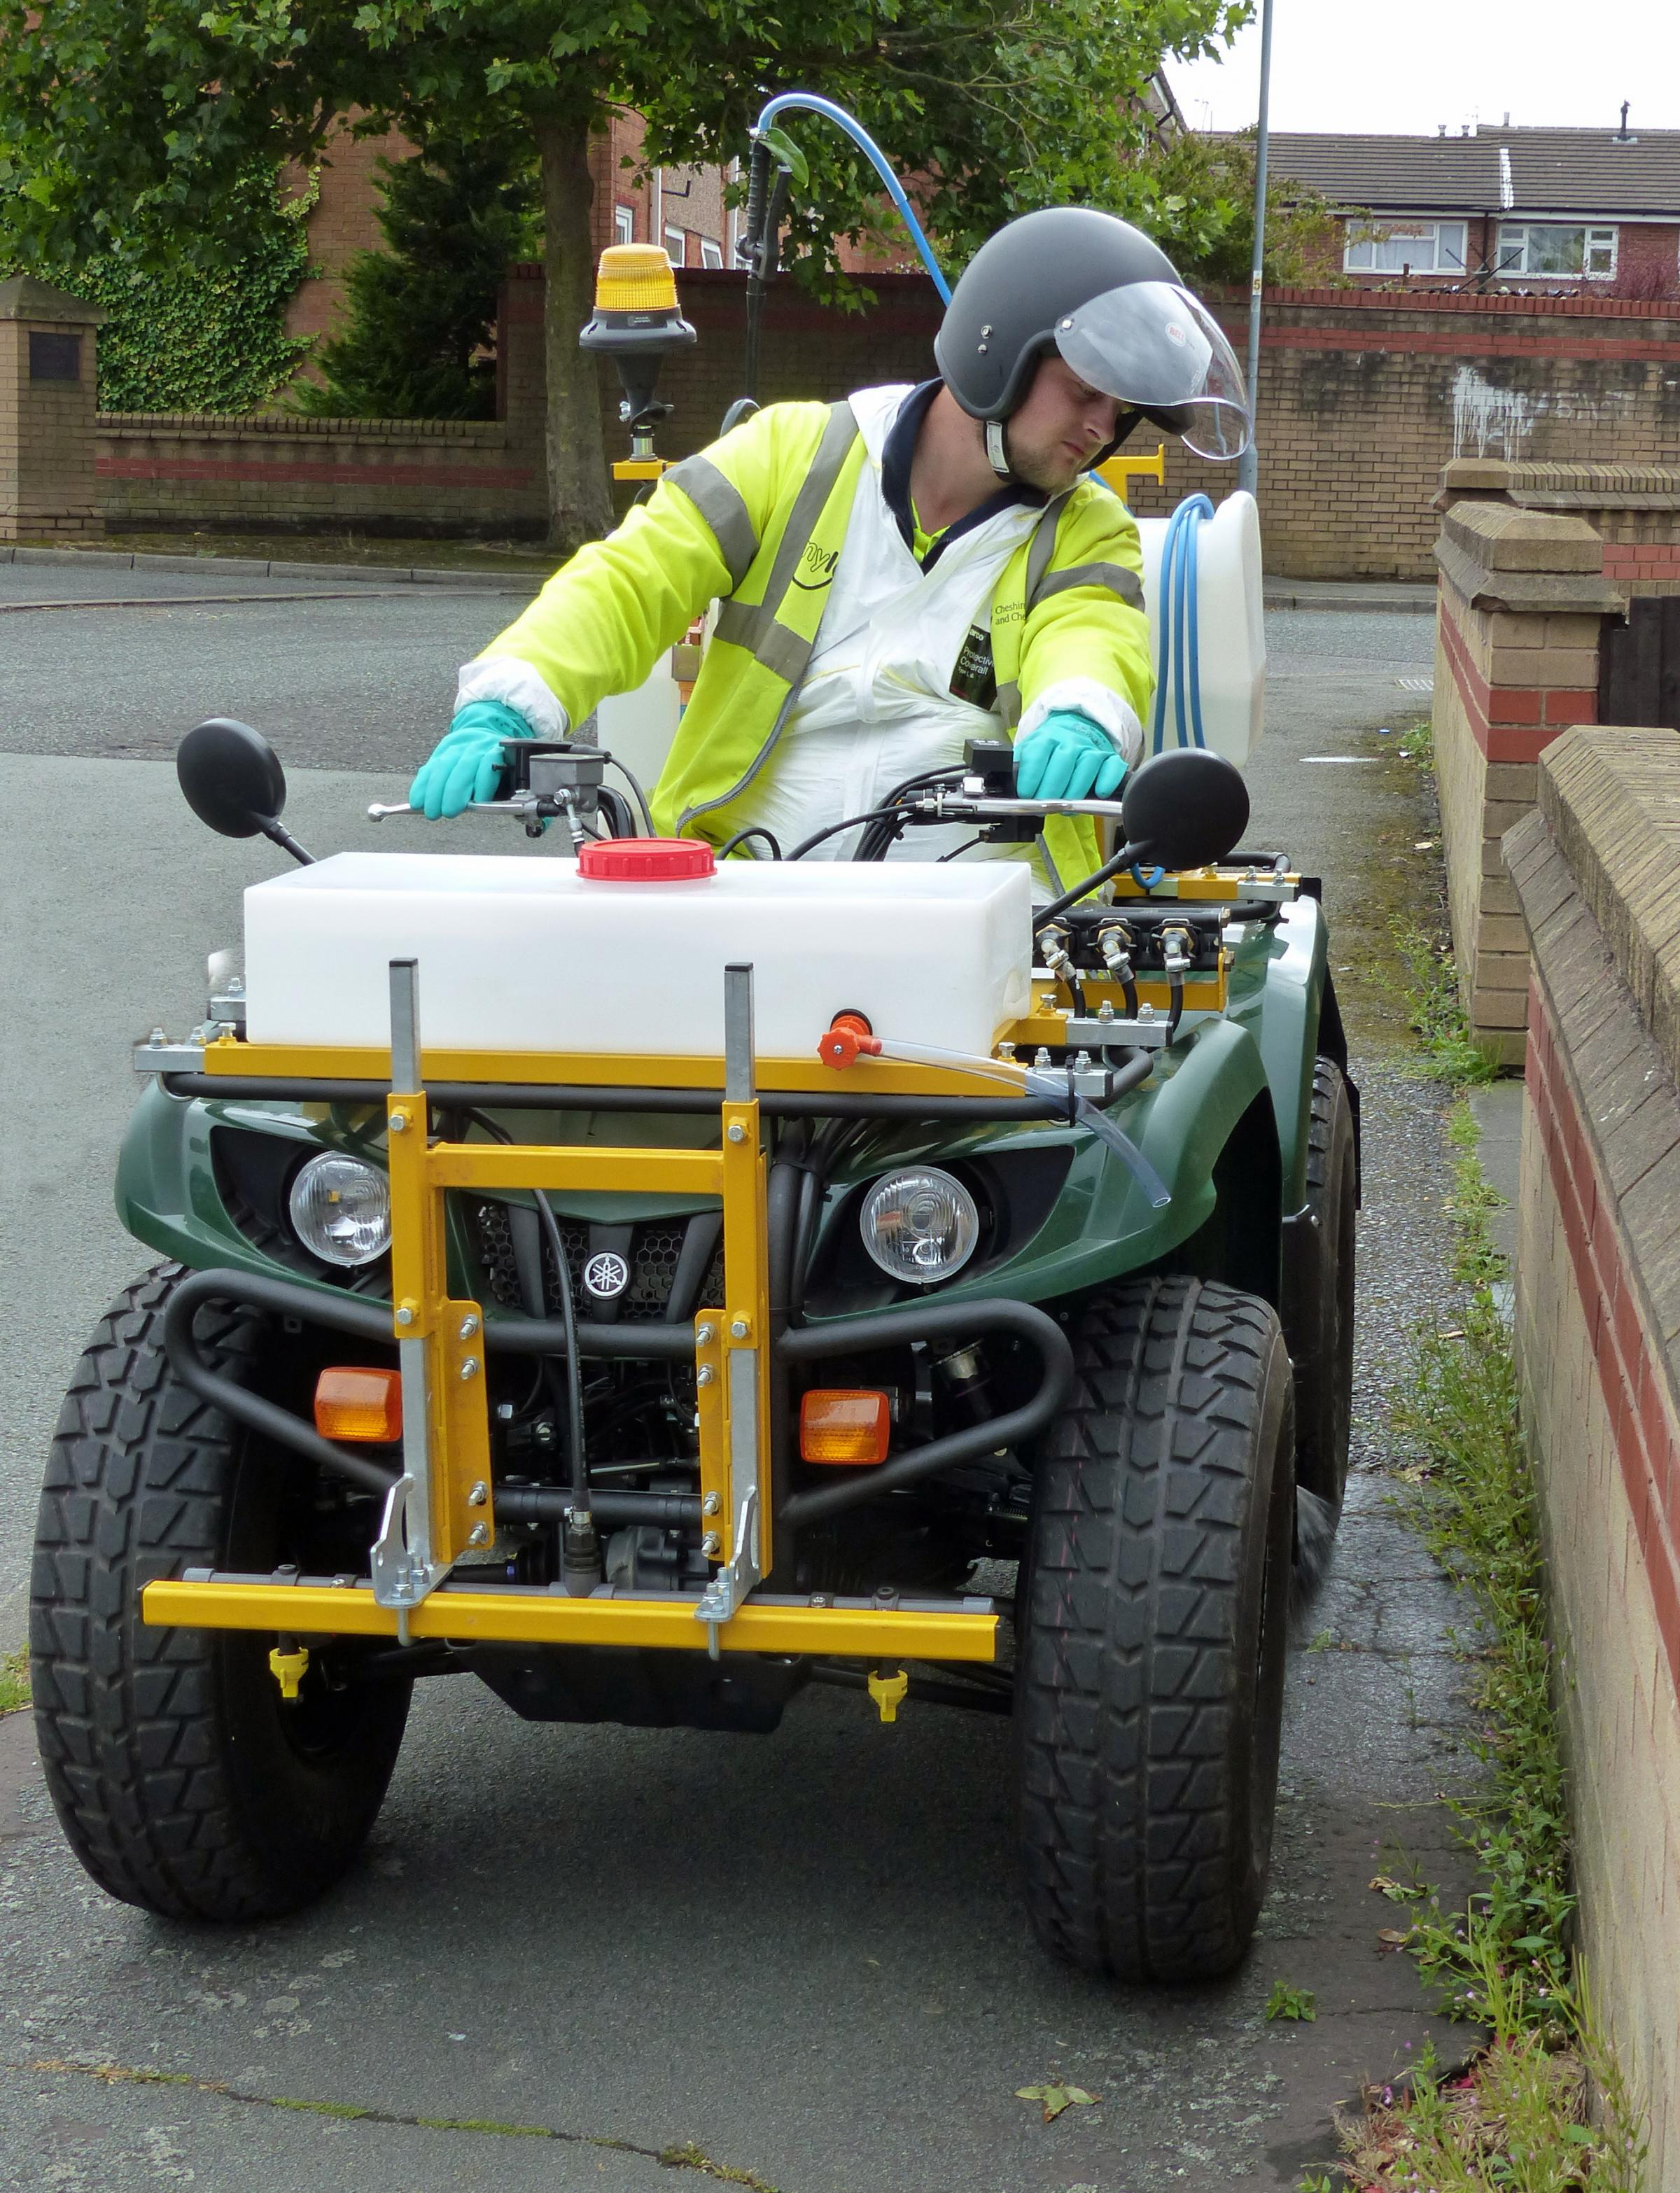 A council quad bike used for weed-spraying.